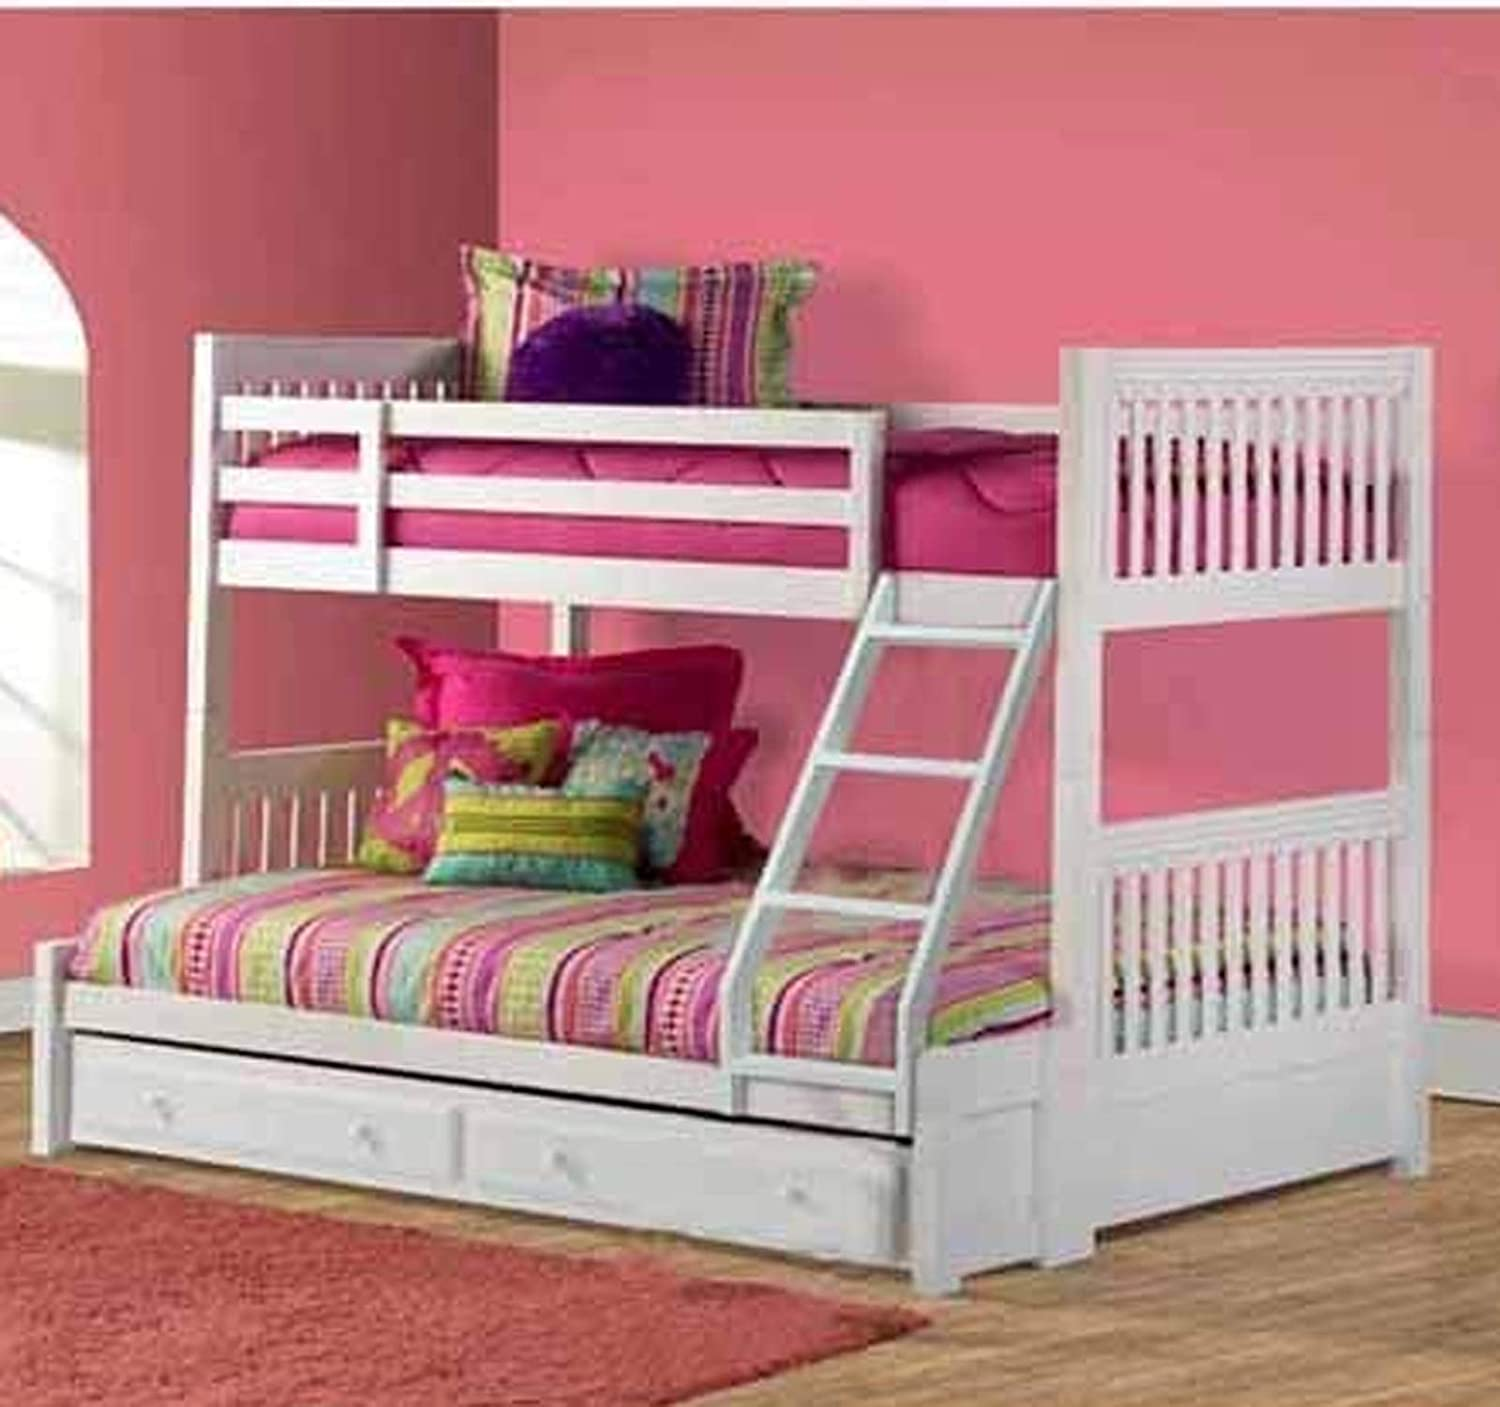 Grogle bunk bed for kids with Storage for Bedroom